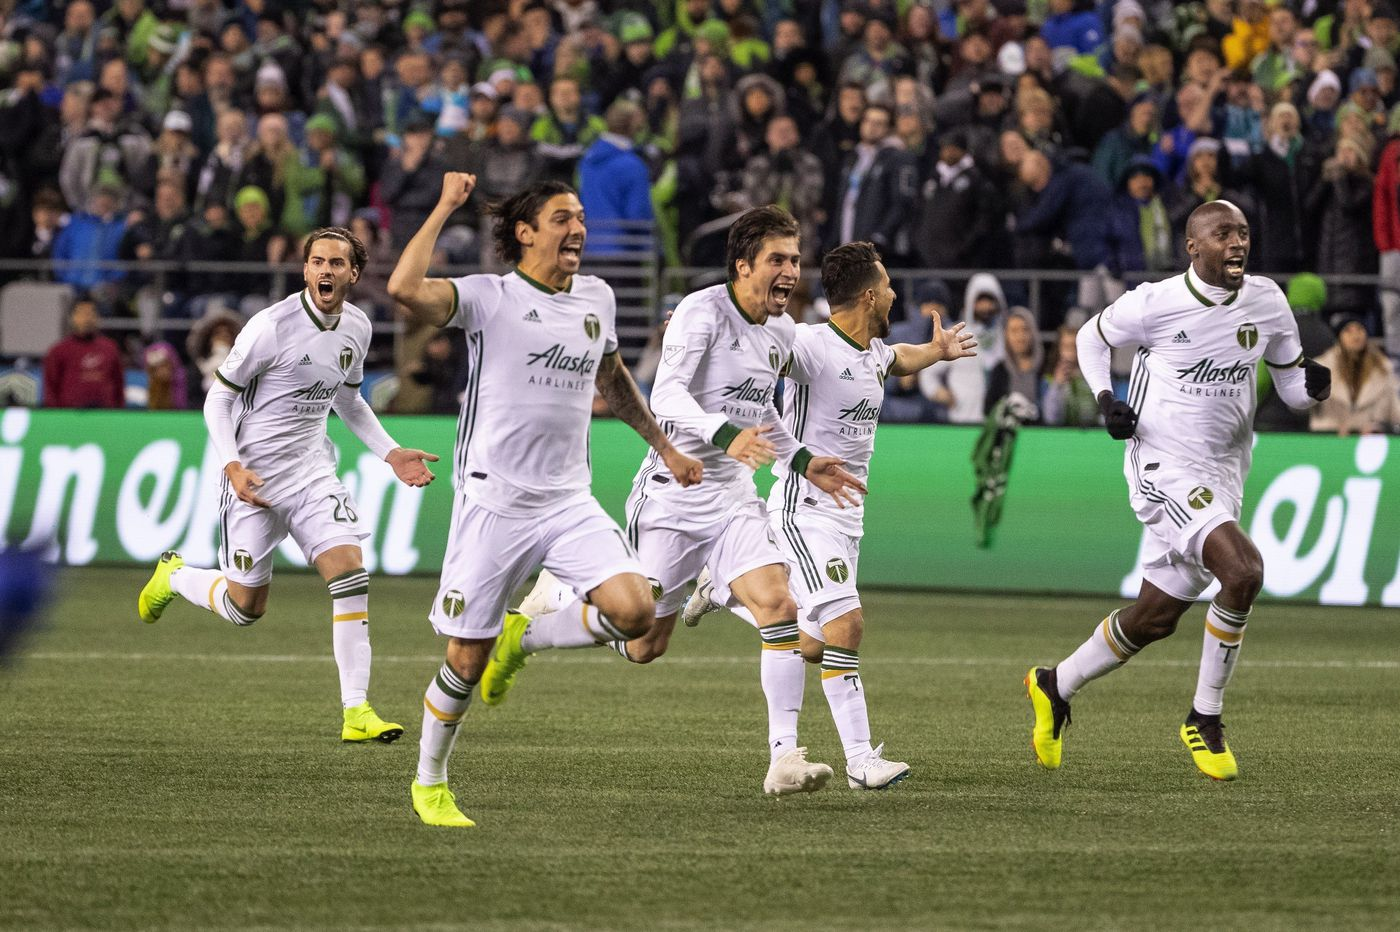 Portland Timbers oust rival Seattle Sounders from MLS playoffs on penalty kicks after 4-4 aggregate draw